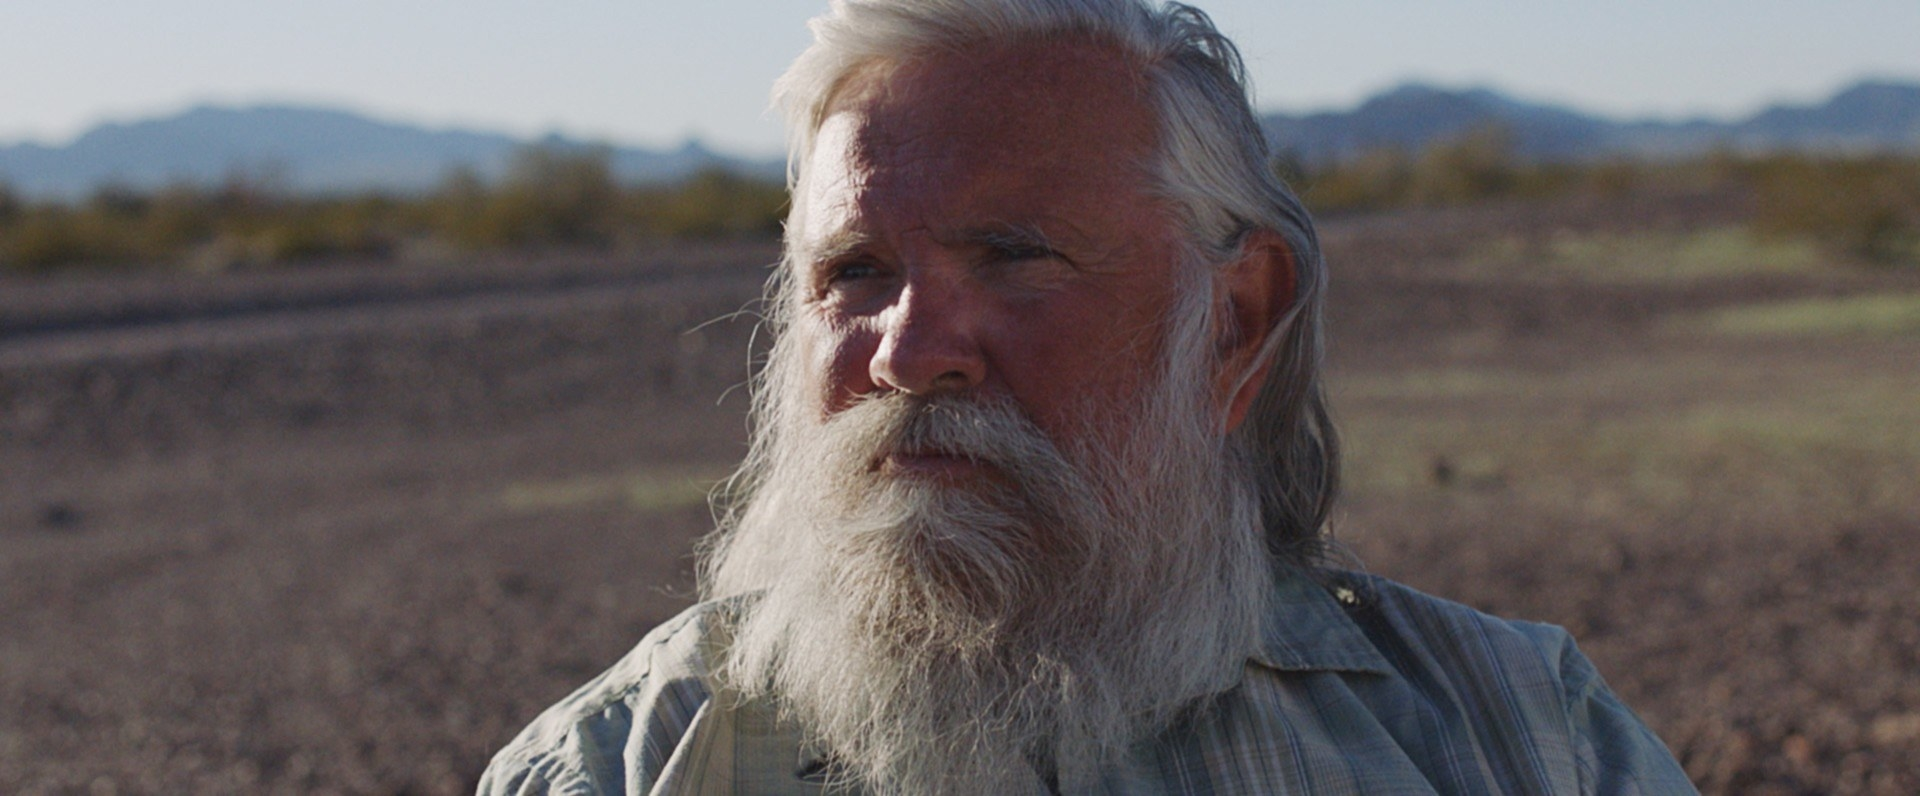 An older man with a beard in front of a desert background